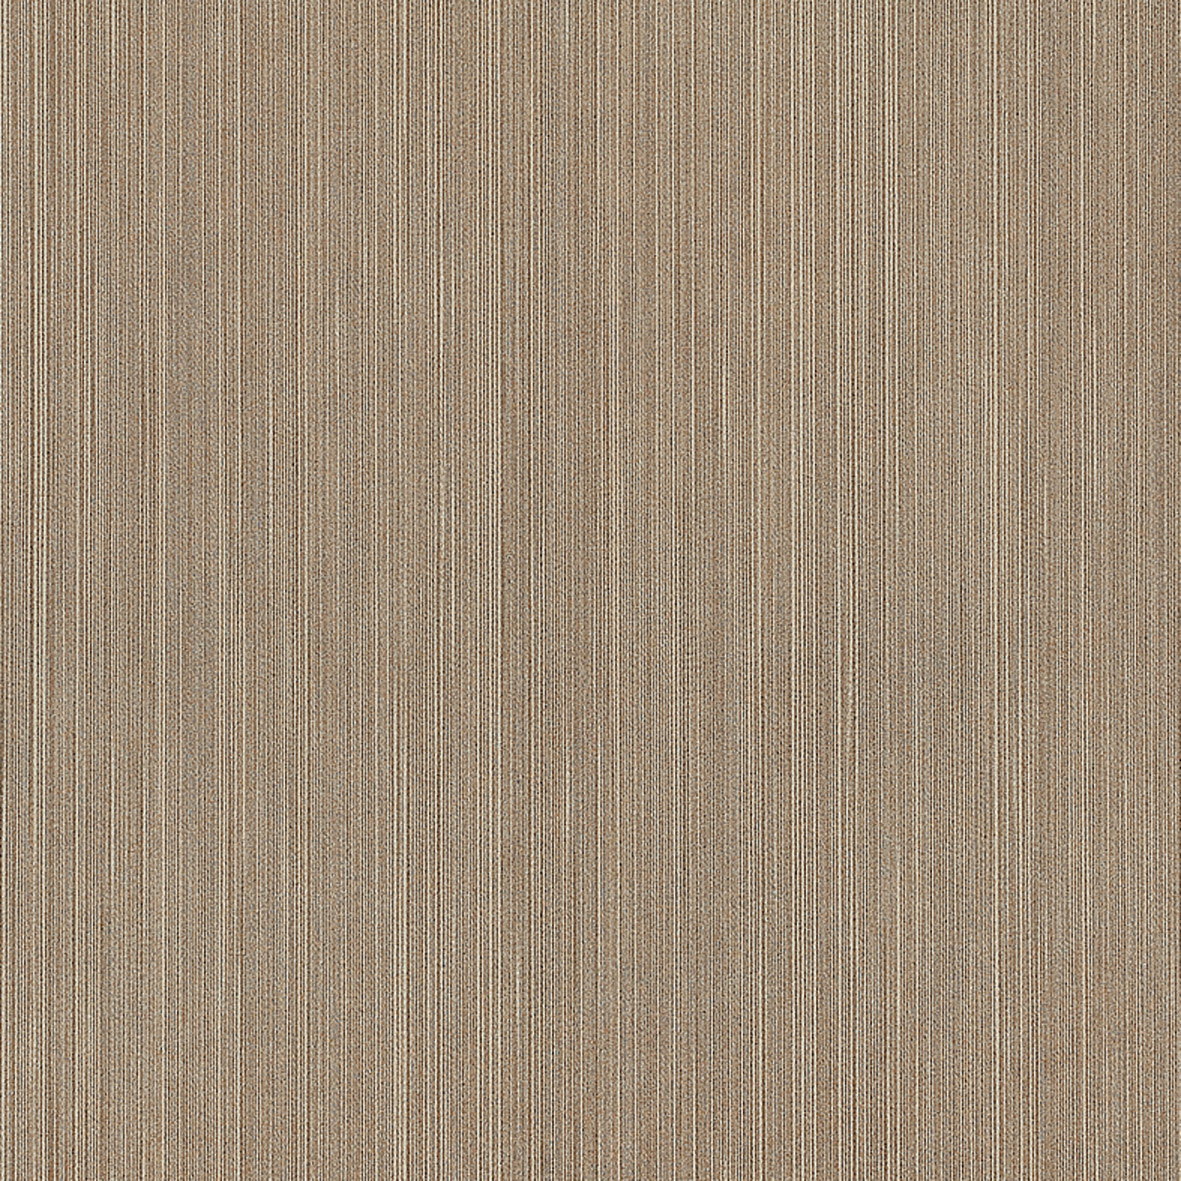 Porcelain Tile | Thin Stone Series - HSLBW6021 | by Hospitality Finishes